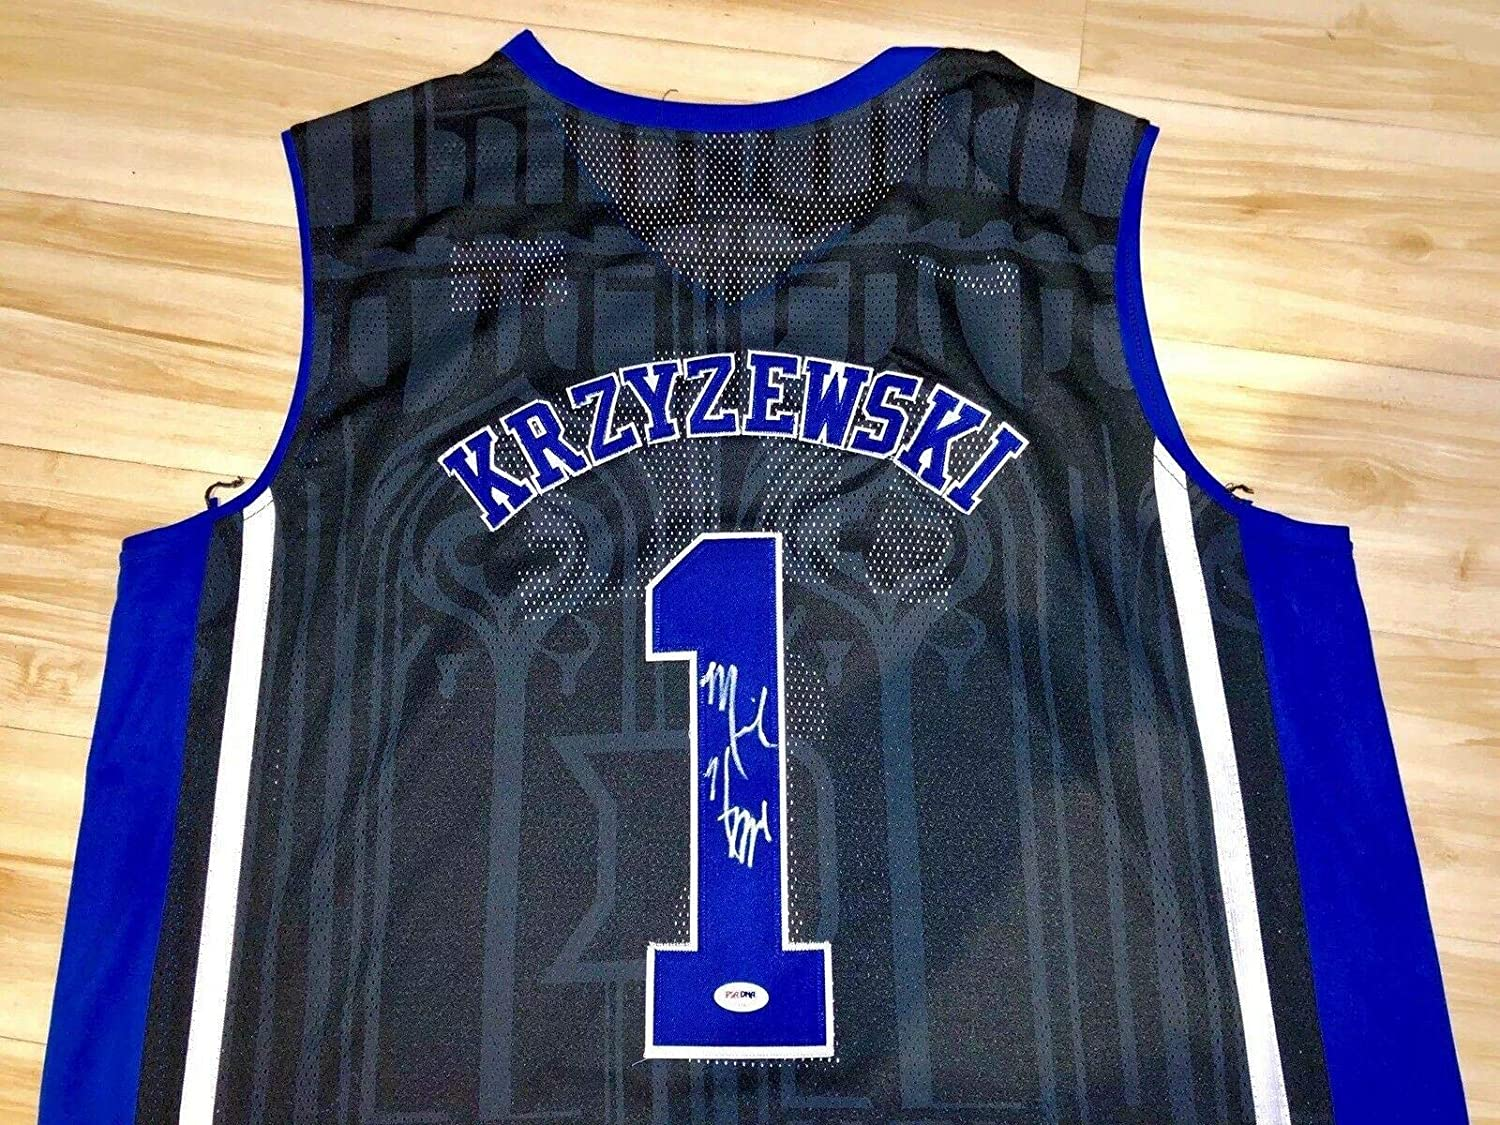 acf48f859 Autographed Mike Krzyzewski Jersey - Coach K NCAA Cert - PSA DNA Certified  - Autographed College Jerseys at Amazon s Sports Collectibles Store